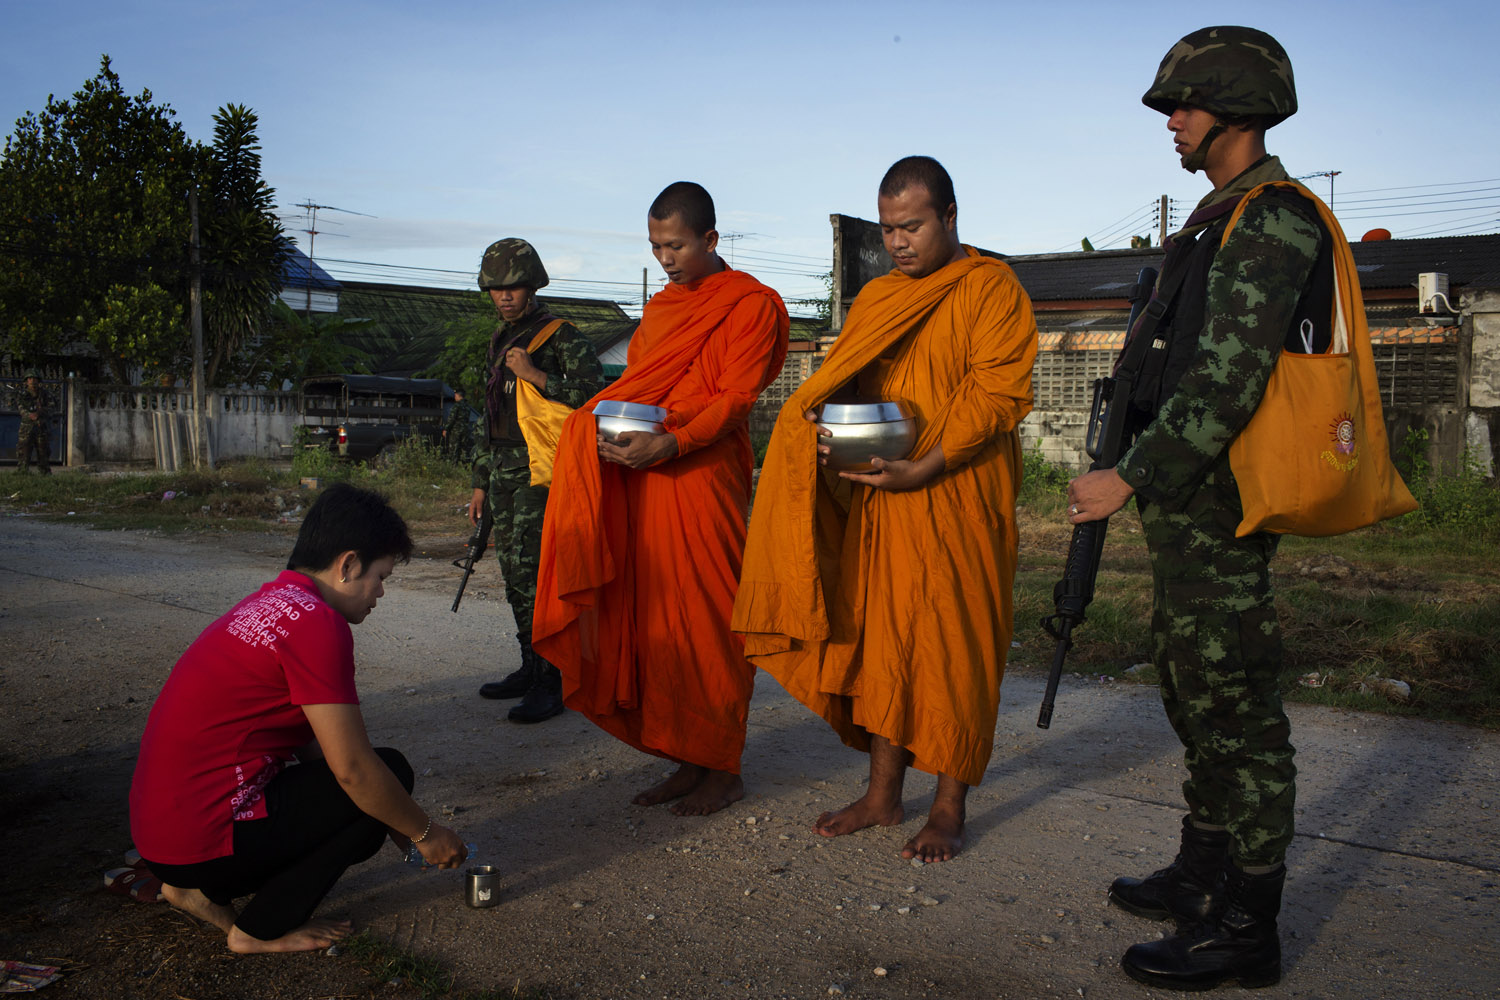 Soldiers from the 23rd Battalion of the Thai Army provide security as monks from the Lak Muang Temple collect alms in  Pattani.